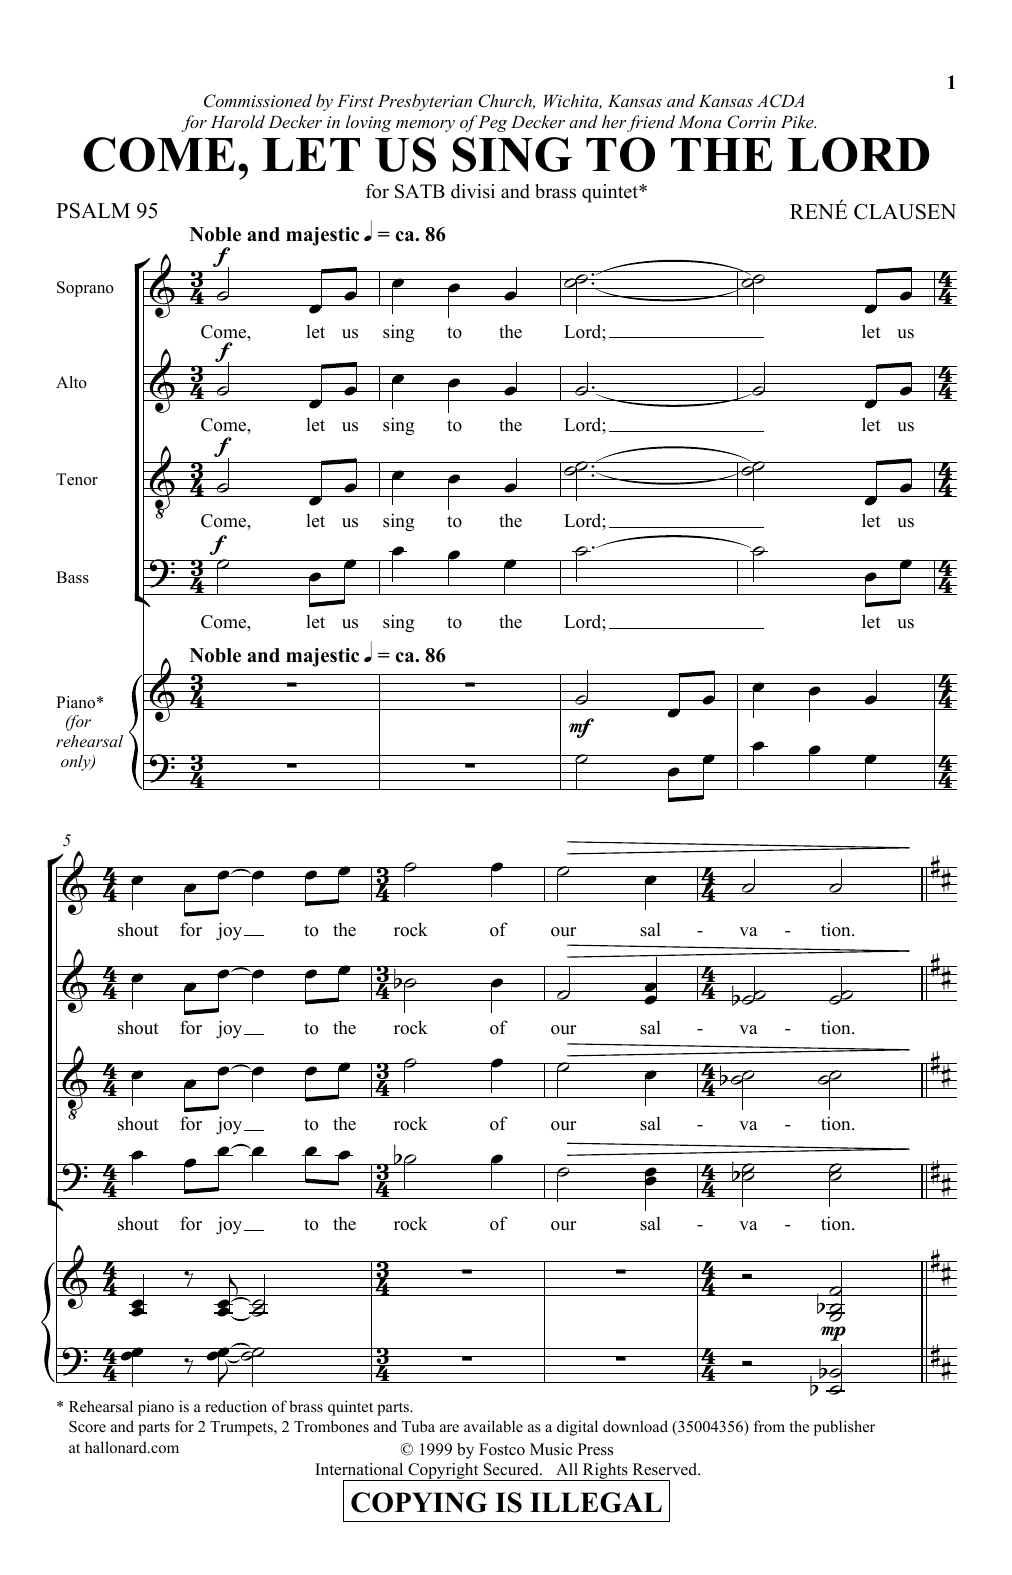 Download Rene Clausen 'Come, Let Us Sing To The Lord' Digital Sheet Music Notes & Chords and start playing in minutes